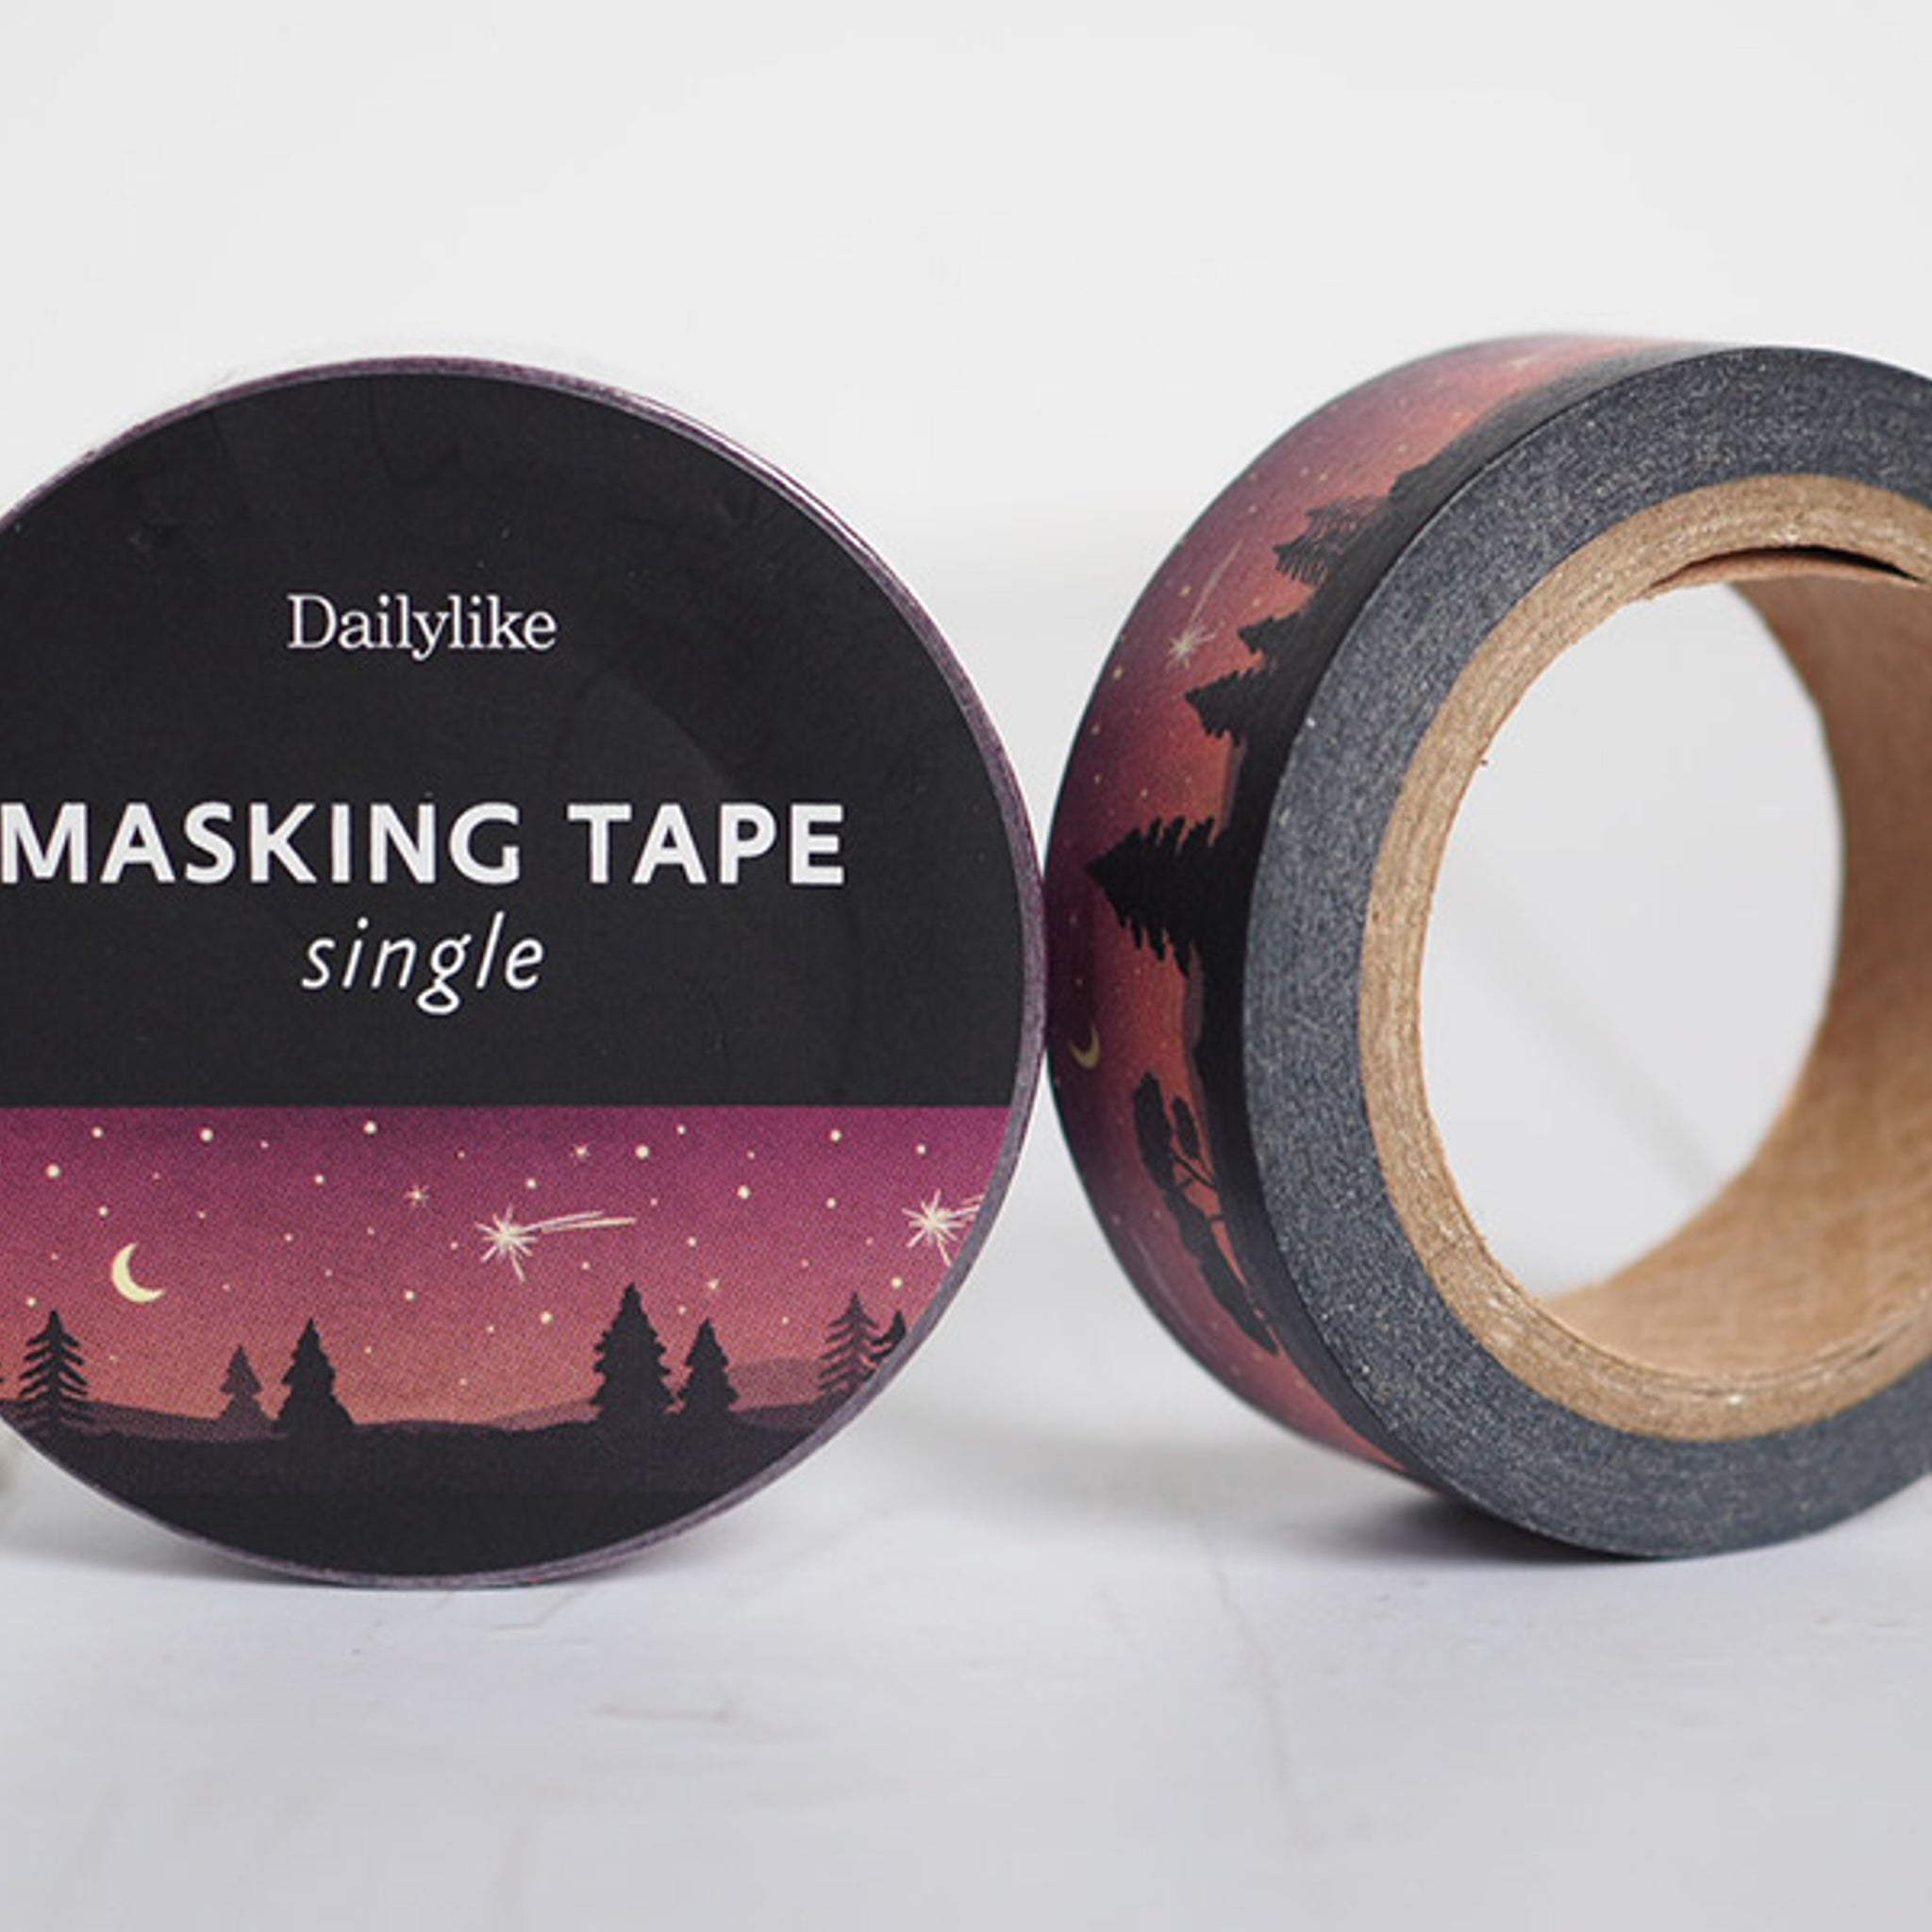 Dailylike 127 Shooting Star 15mm Masking Tape